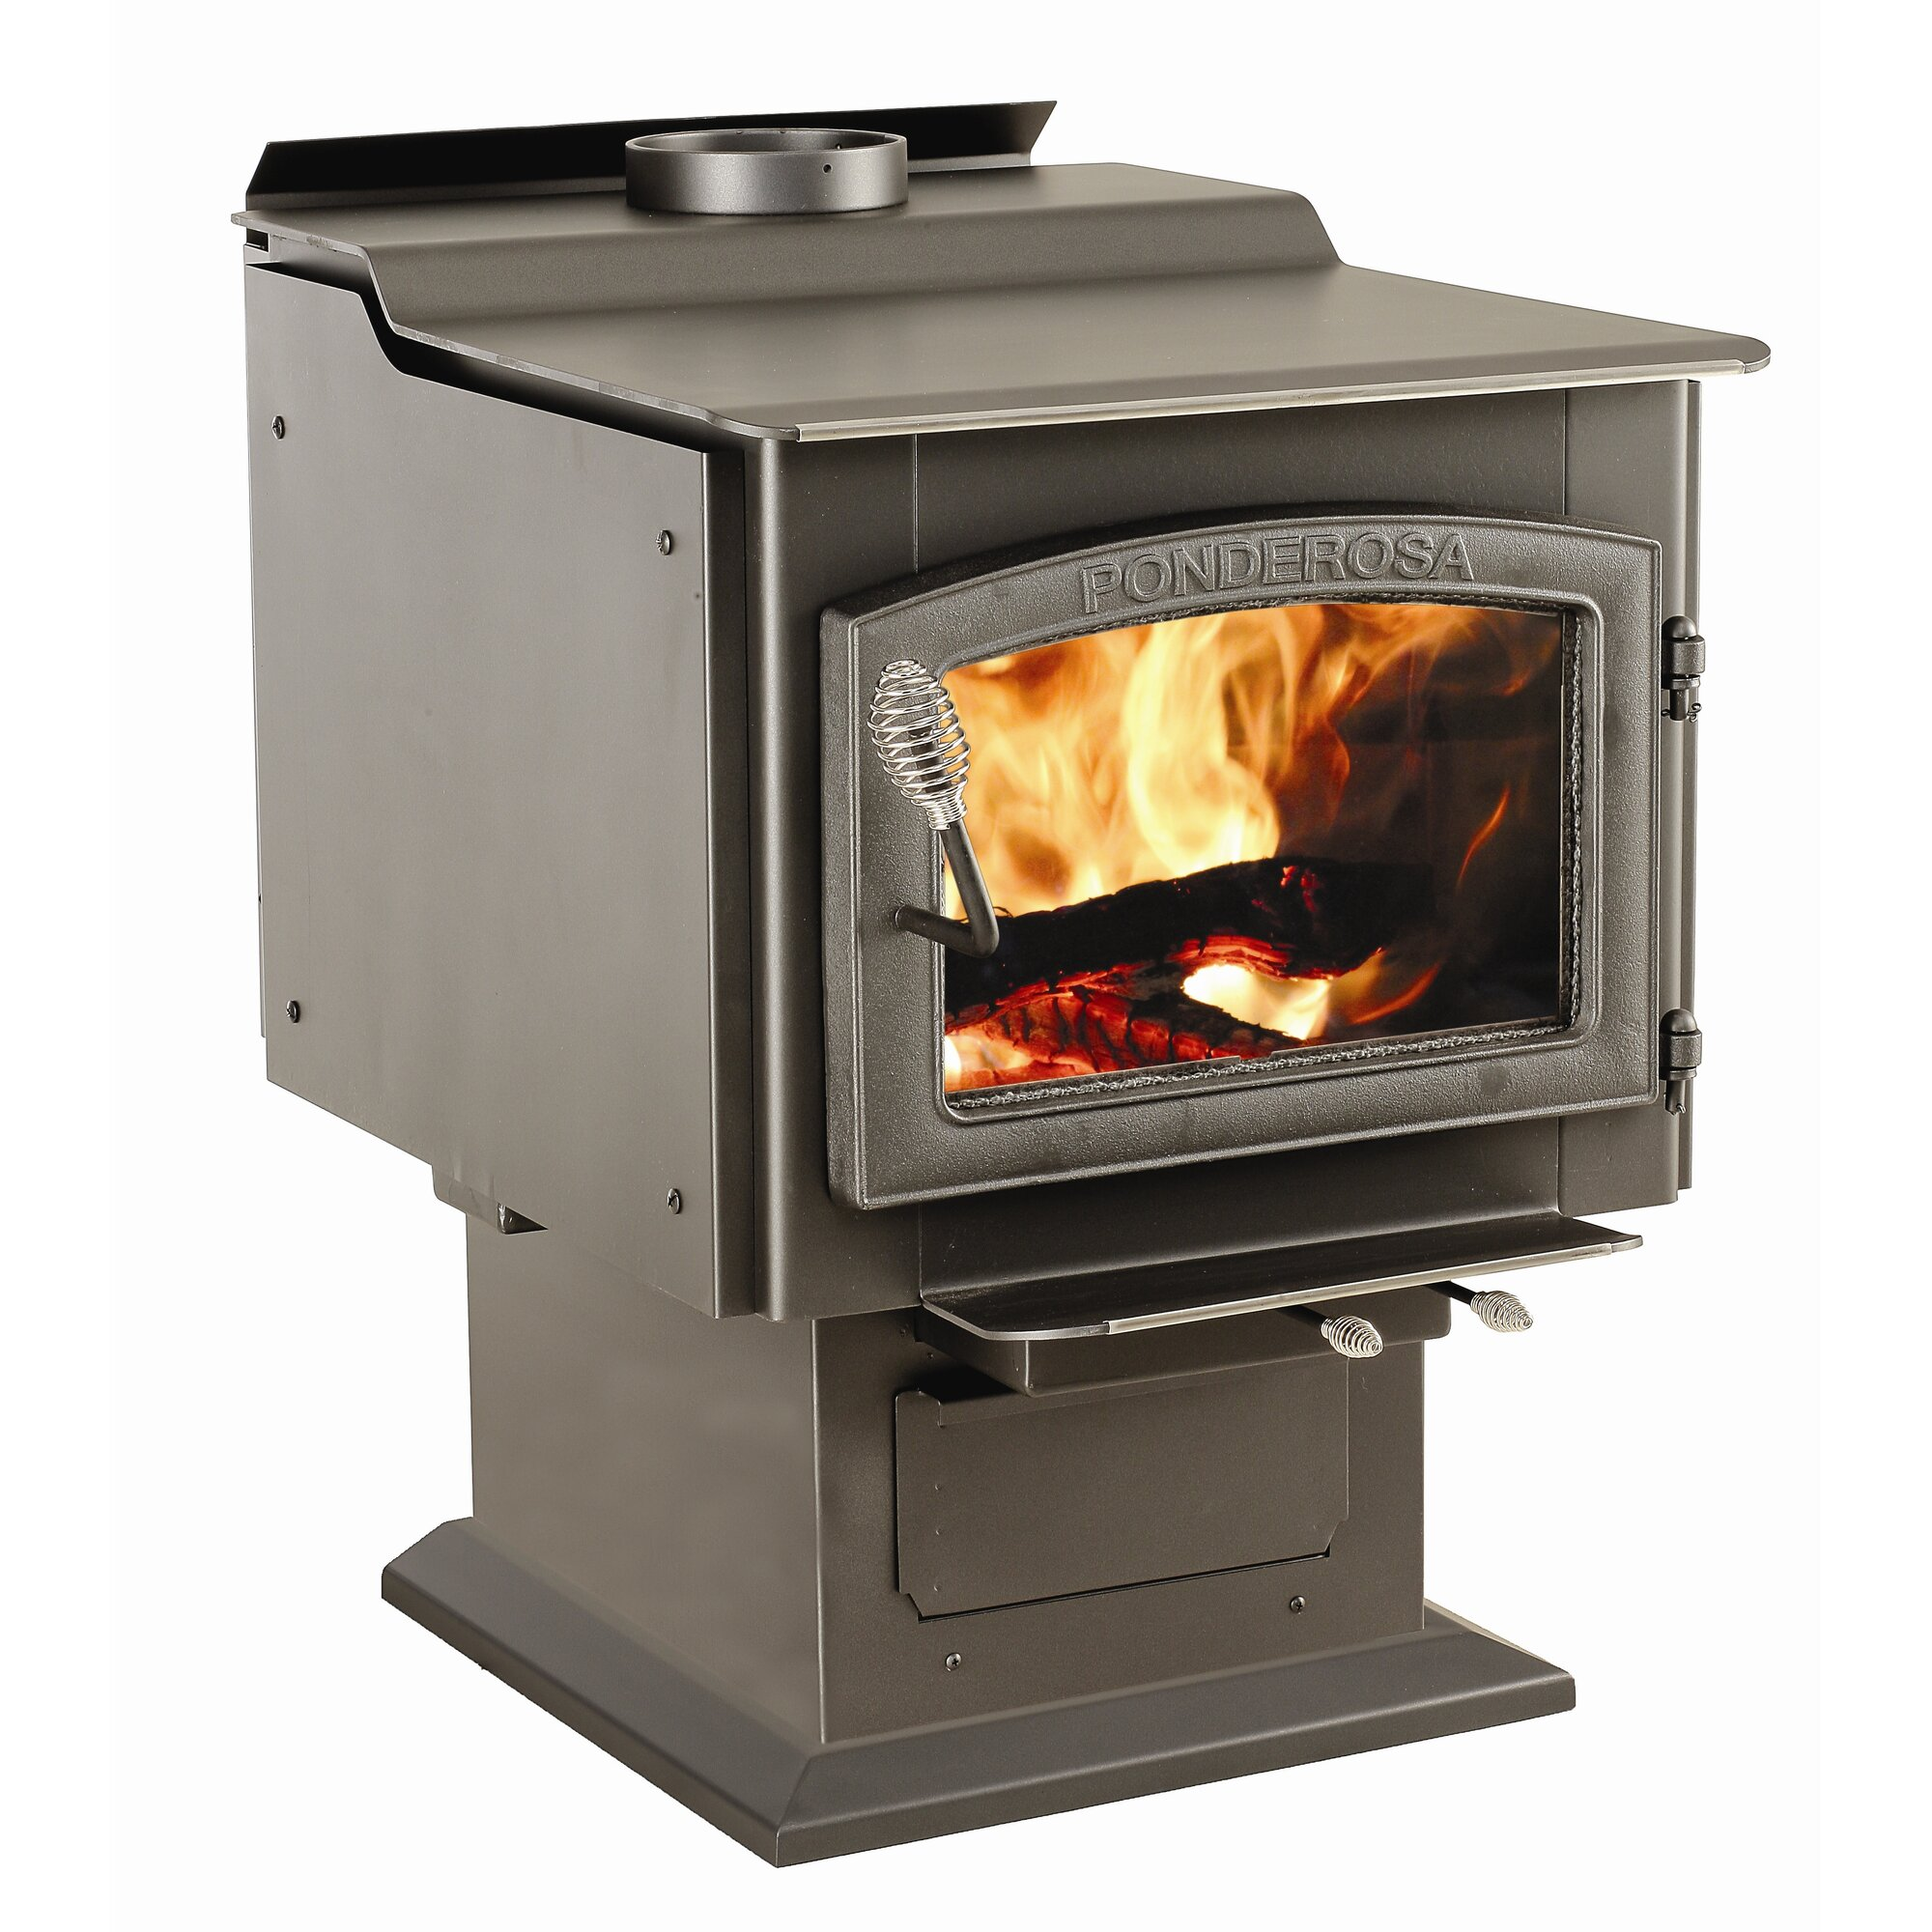 Vogelzang Ponderosa 3,200 sq. ft. Direct Vent Wood Stove & Reviews ...